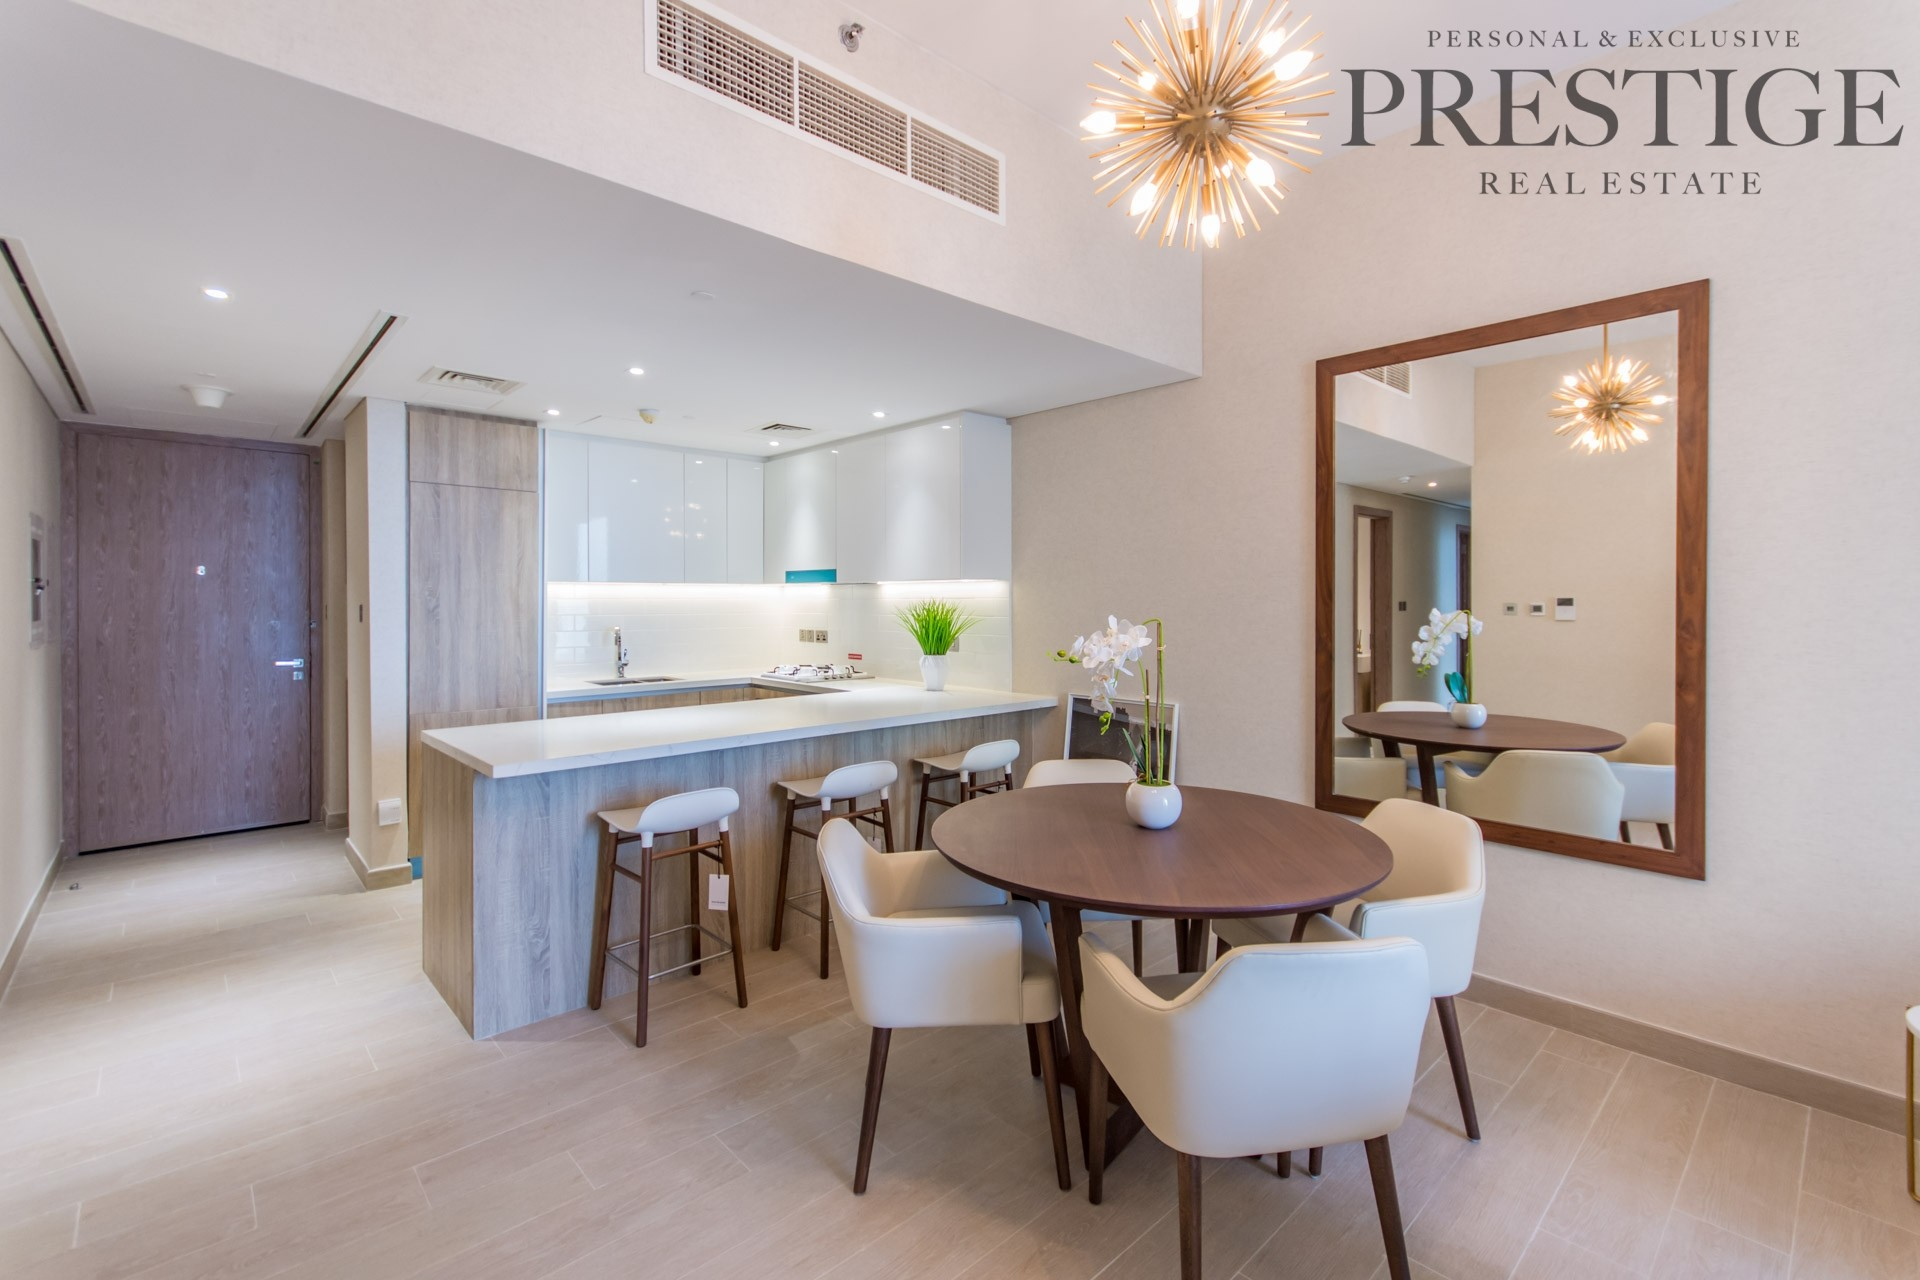 2 bedrooms | LIV Residence | Tenanted